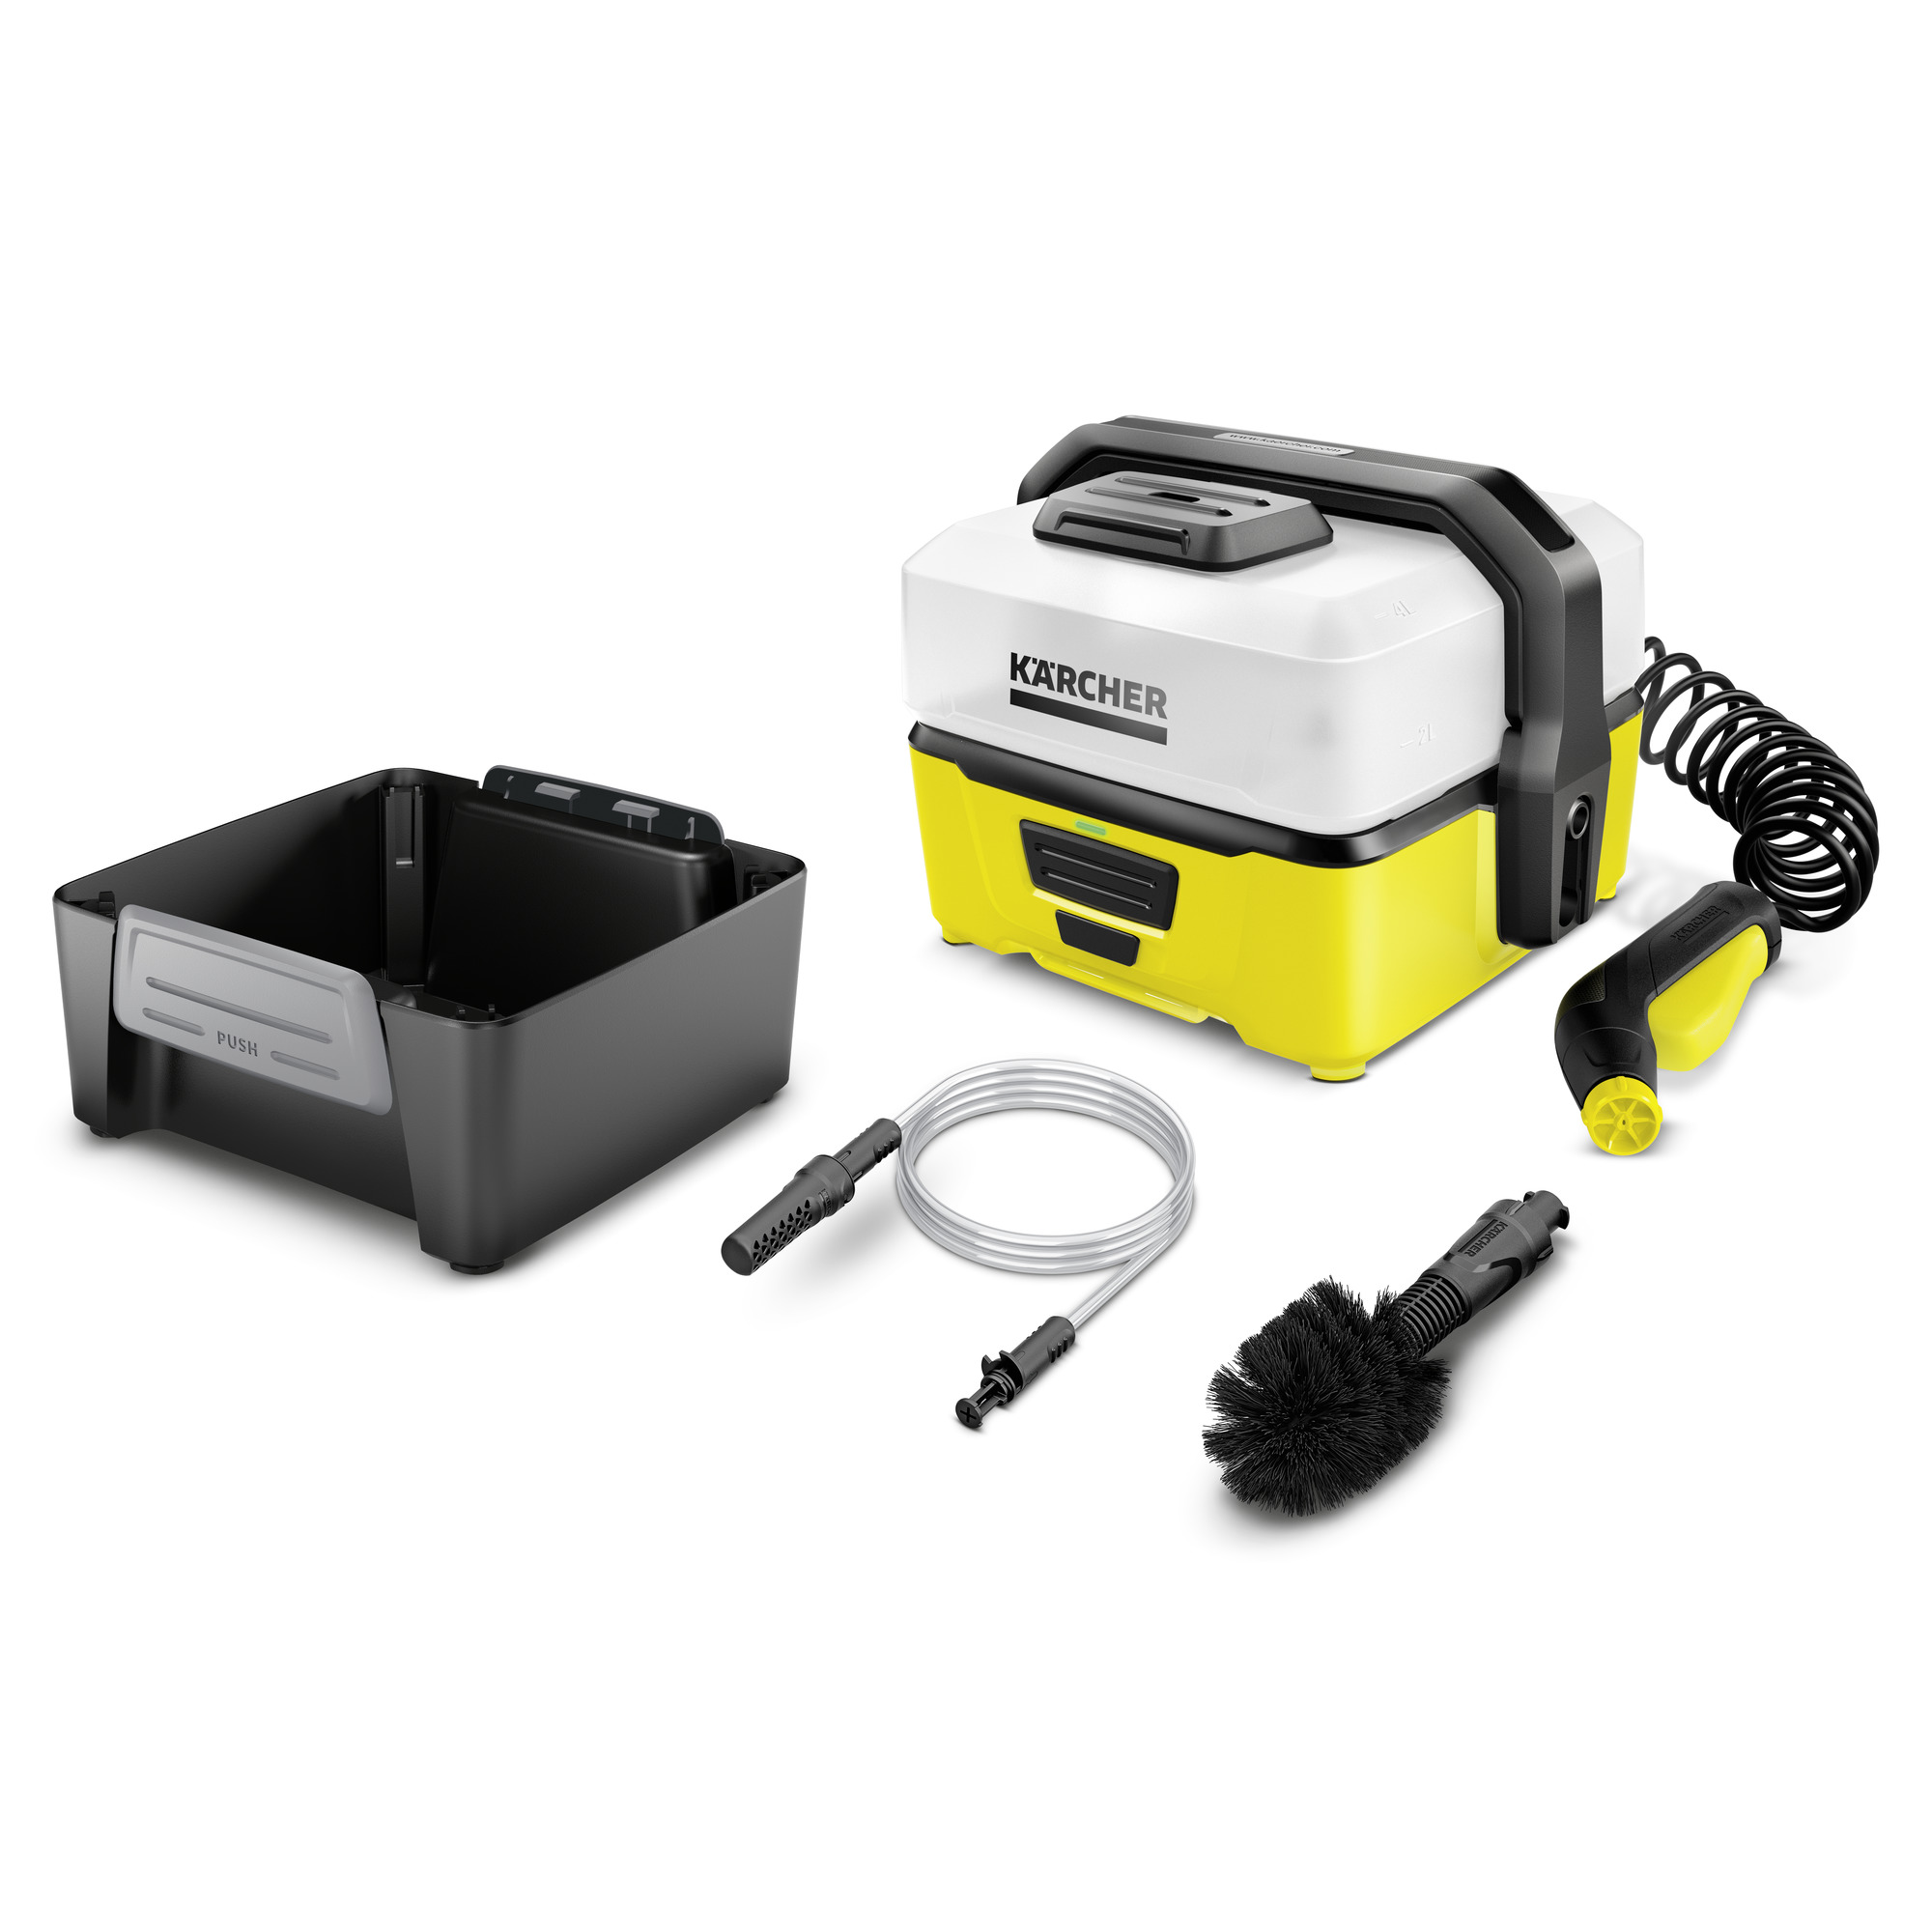 KARCHER Mobile Outdoor Cleaner OC 3 Adventure Explorer box (1.680-002.0)